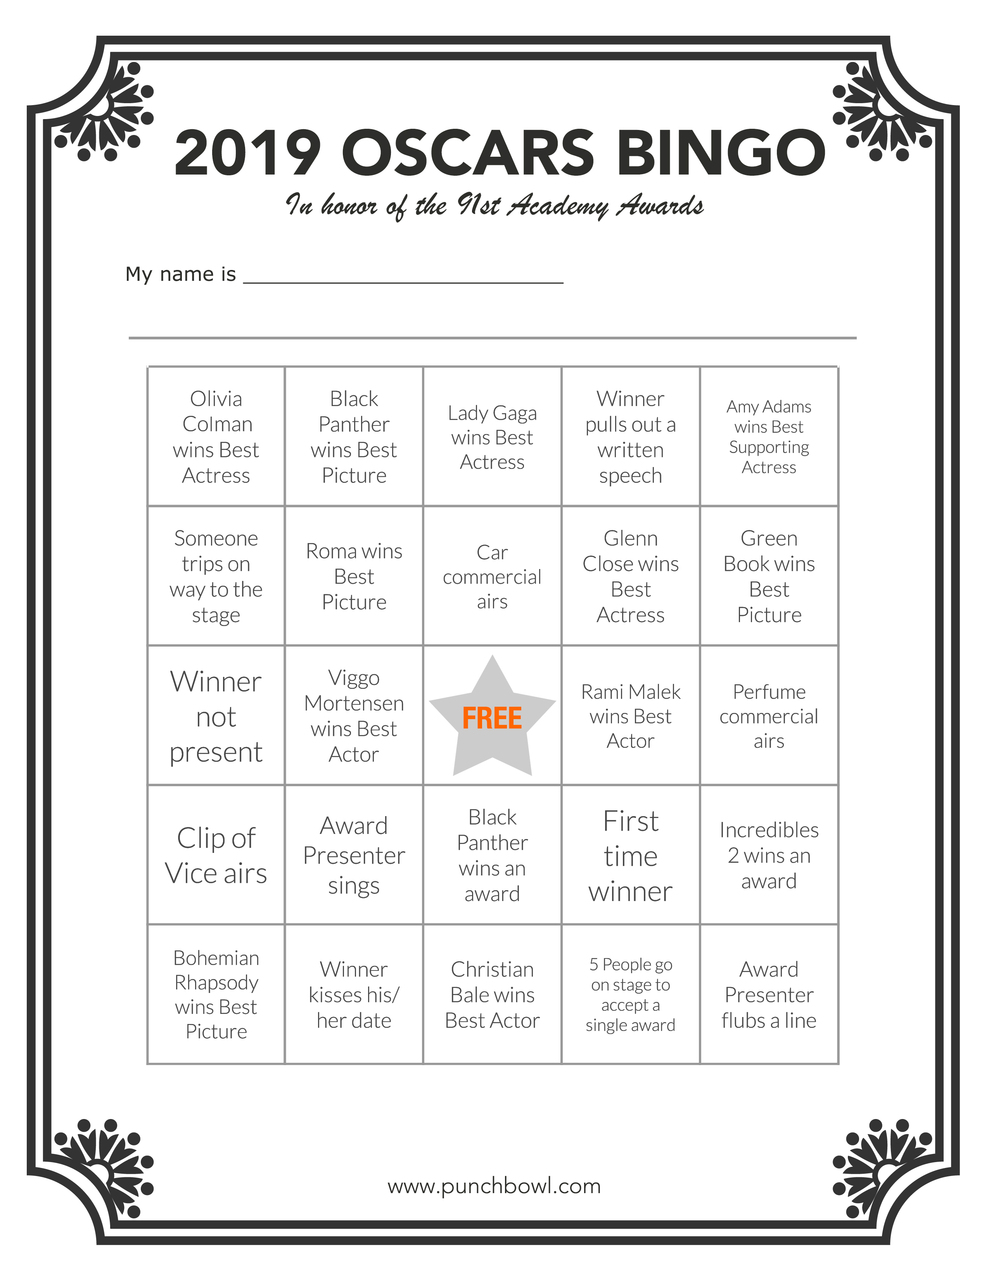 photo about Musical Bingo Cards Printable identify Printable Oscars Bingo